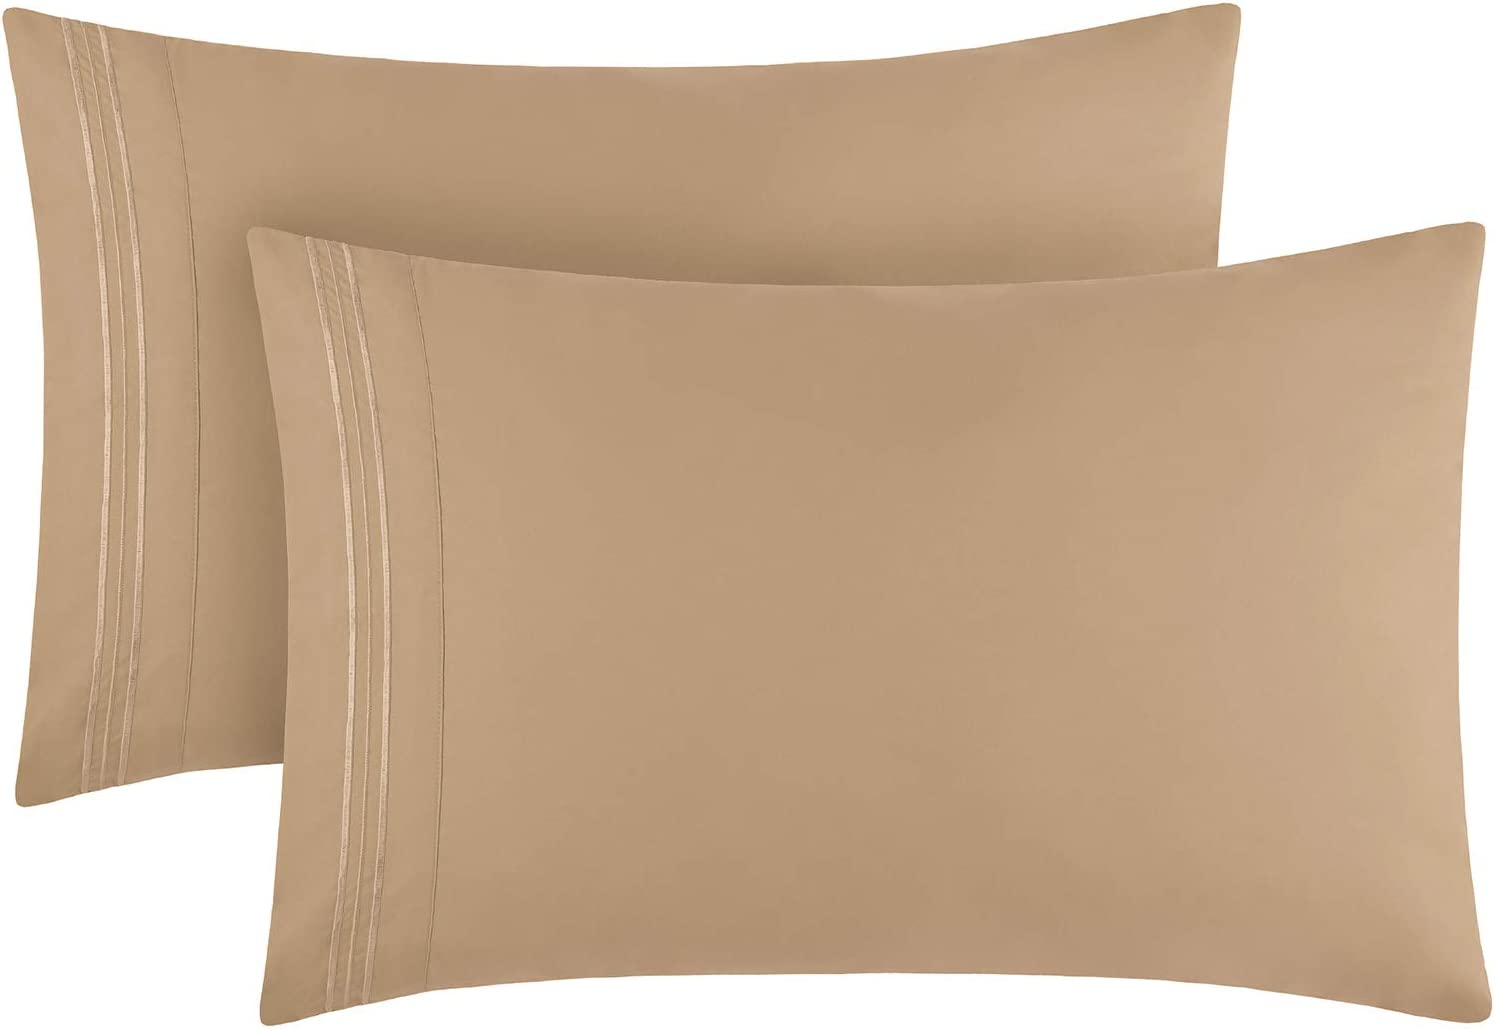 Mellanni King Size Pillow Cases 2 Pack - Pillow Covers - Pillow Protector - Luxury 1800 Bedding Sheets & Pillowcases - Envelope Closure - Wrinkle, Fade, Stain Resistant (Set of 2 King Size, Tan)